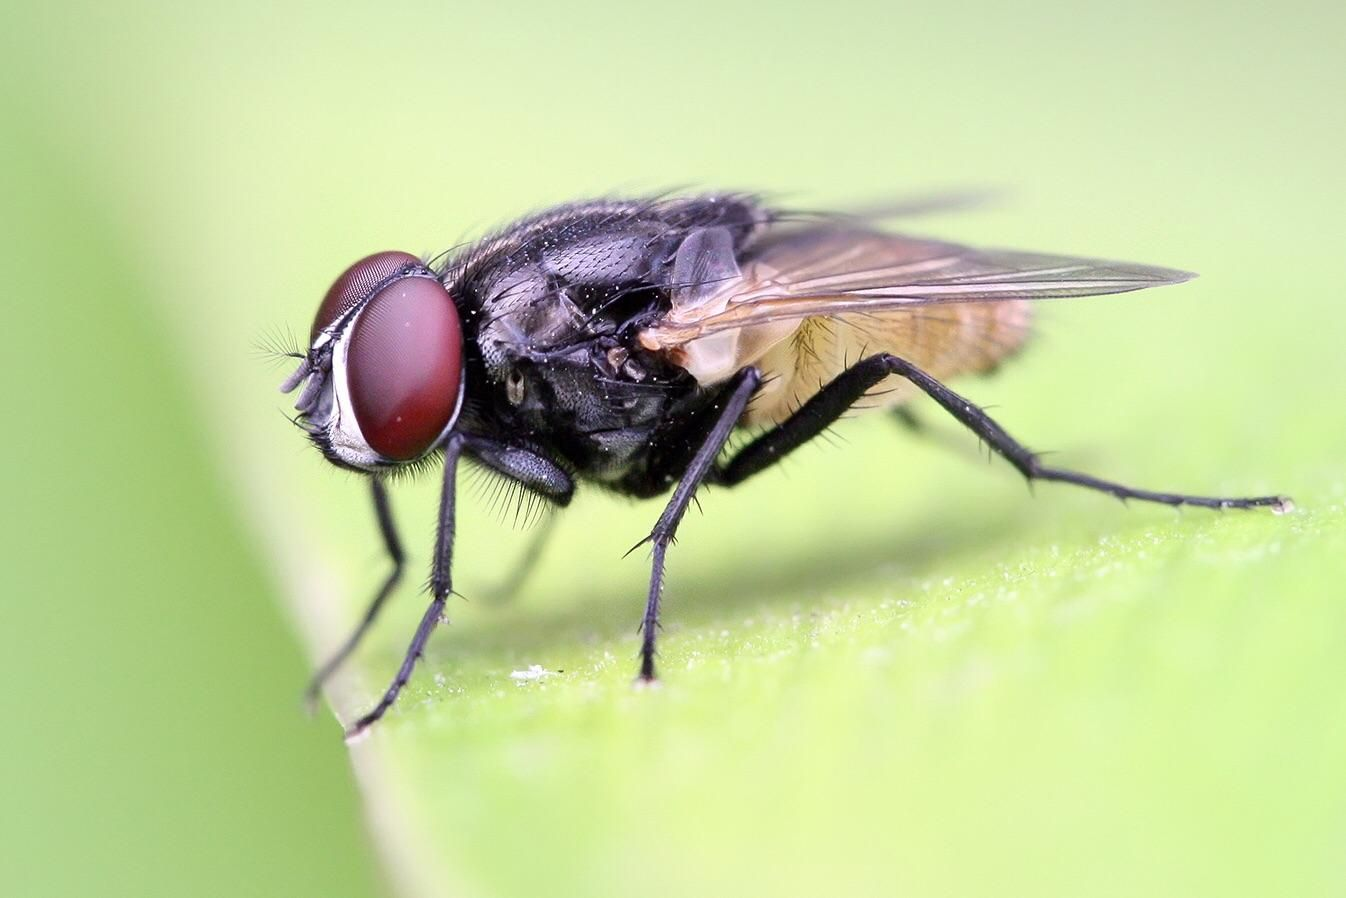 Cute Resting House Fly Fly Control Insects Bamboo Species